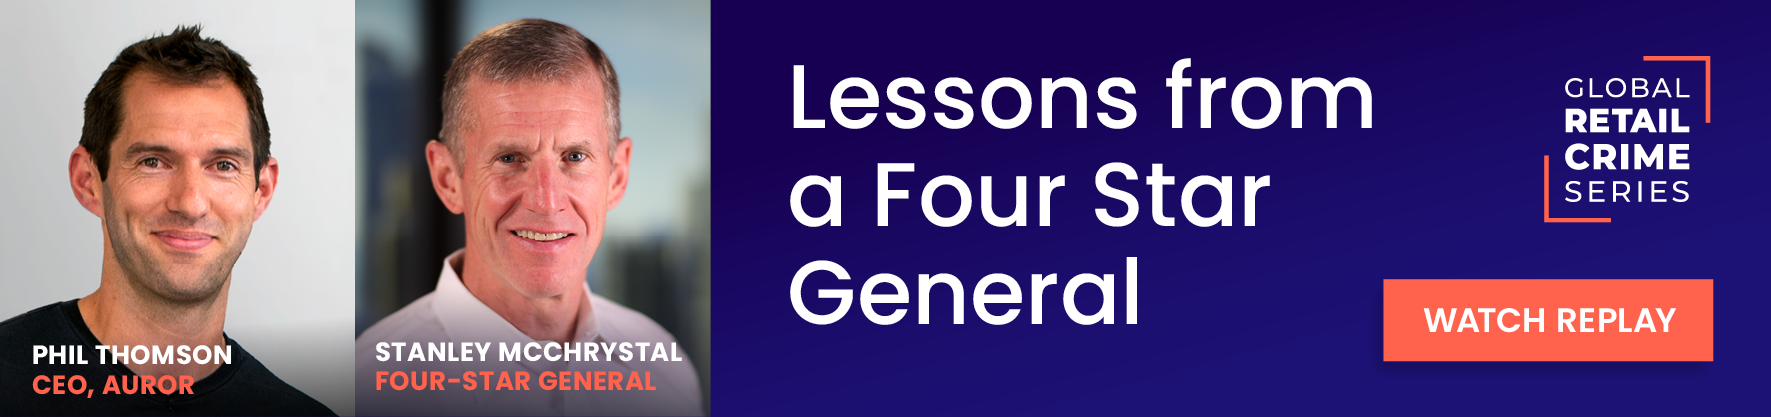 Lessons from a four star general